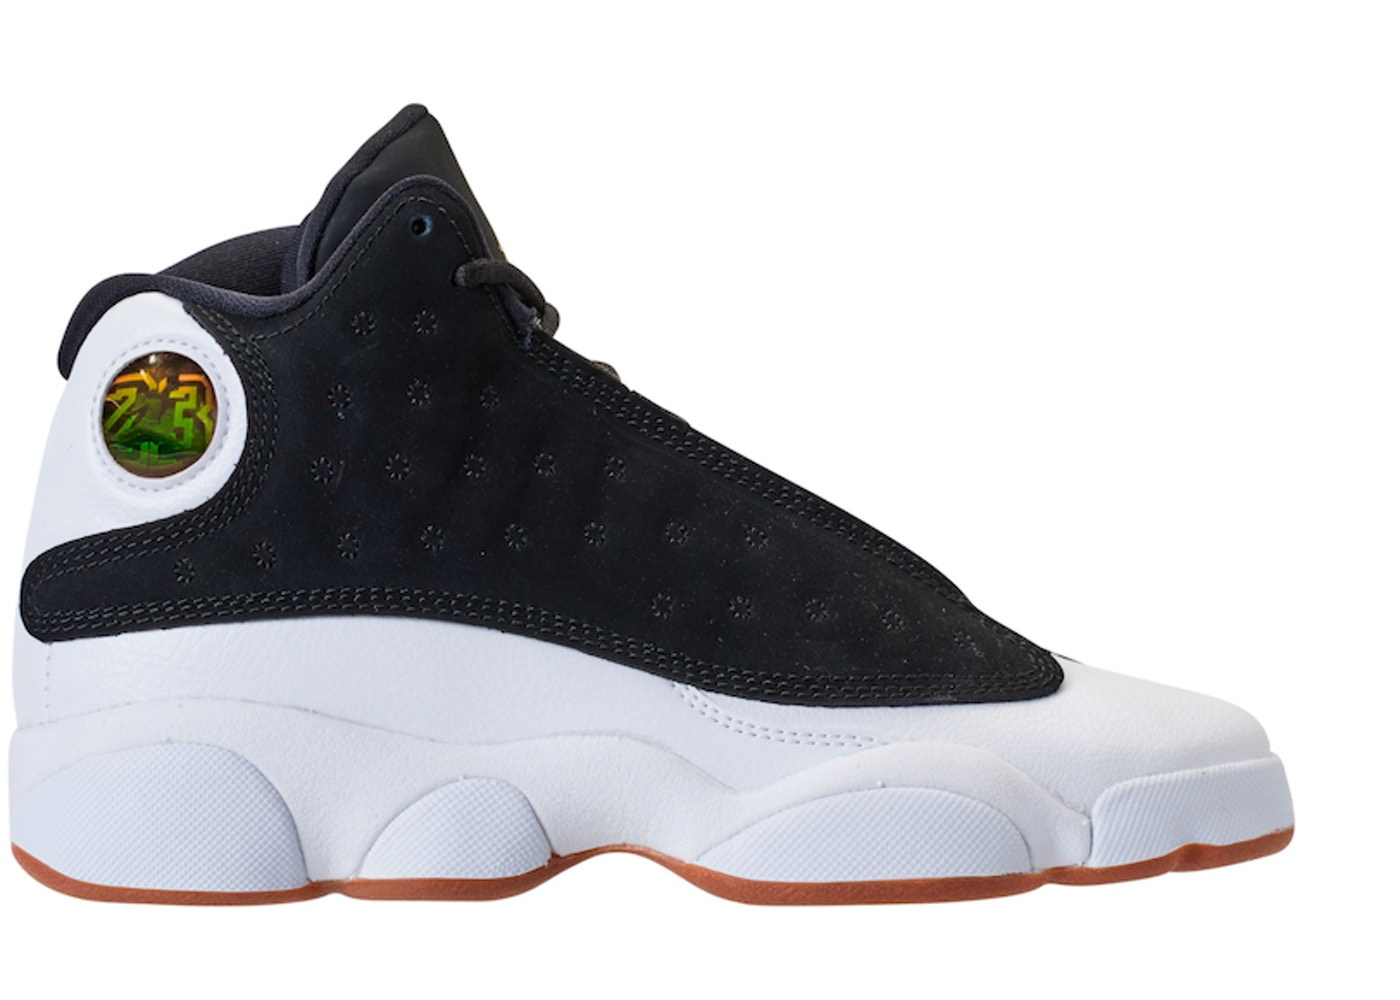 cheap for discount c122c 27d09 Jordan 13 Retro Black White Gum (GS) - 439358-021